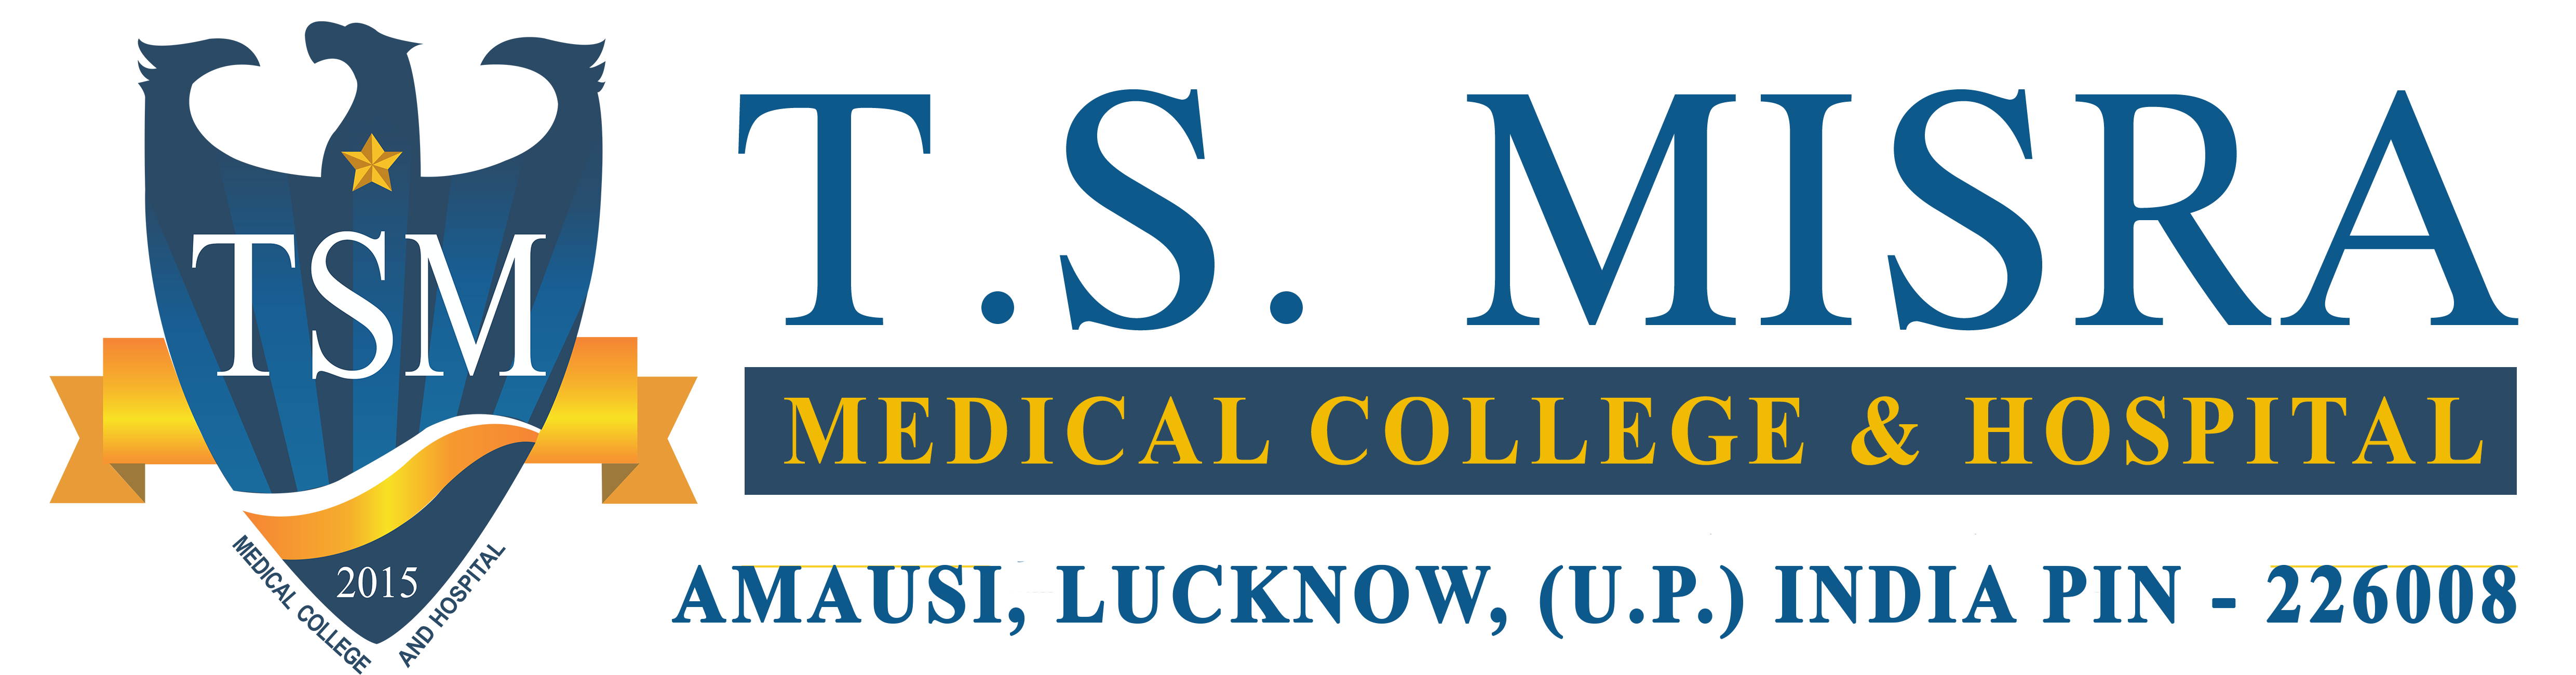 T  S  MISRA MEDICAL COLLEGE AND HOSPITAL